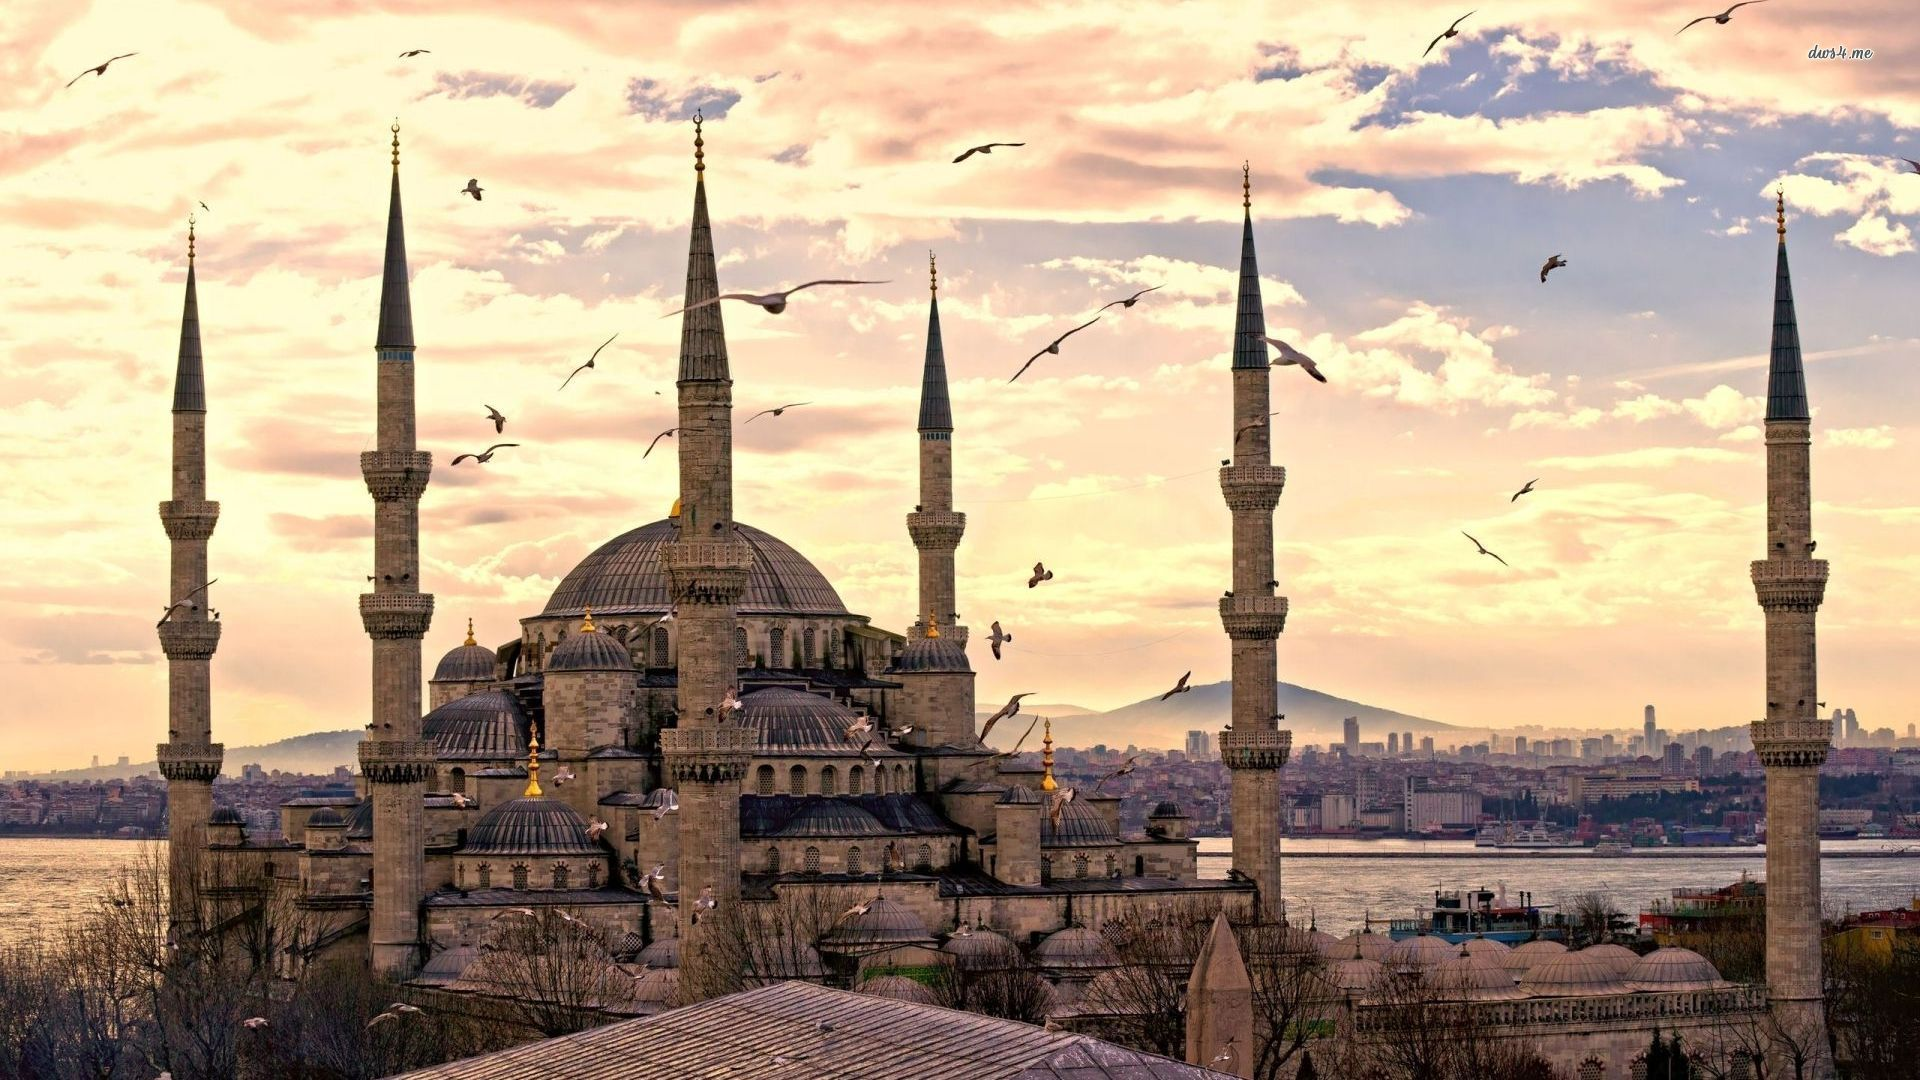 Istanbul Wallpaper Hd Wallpapers Backgrounds Of Your Choice Visit Istanbul Popular Travel Destinations Istanbul Tours